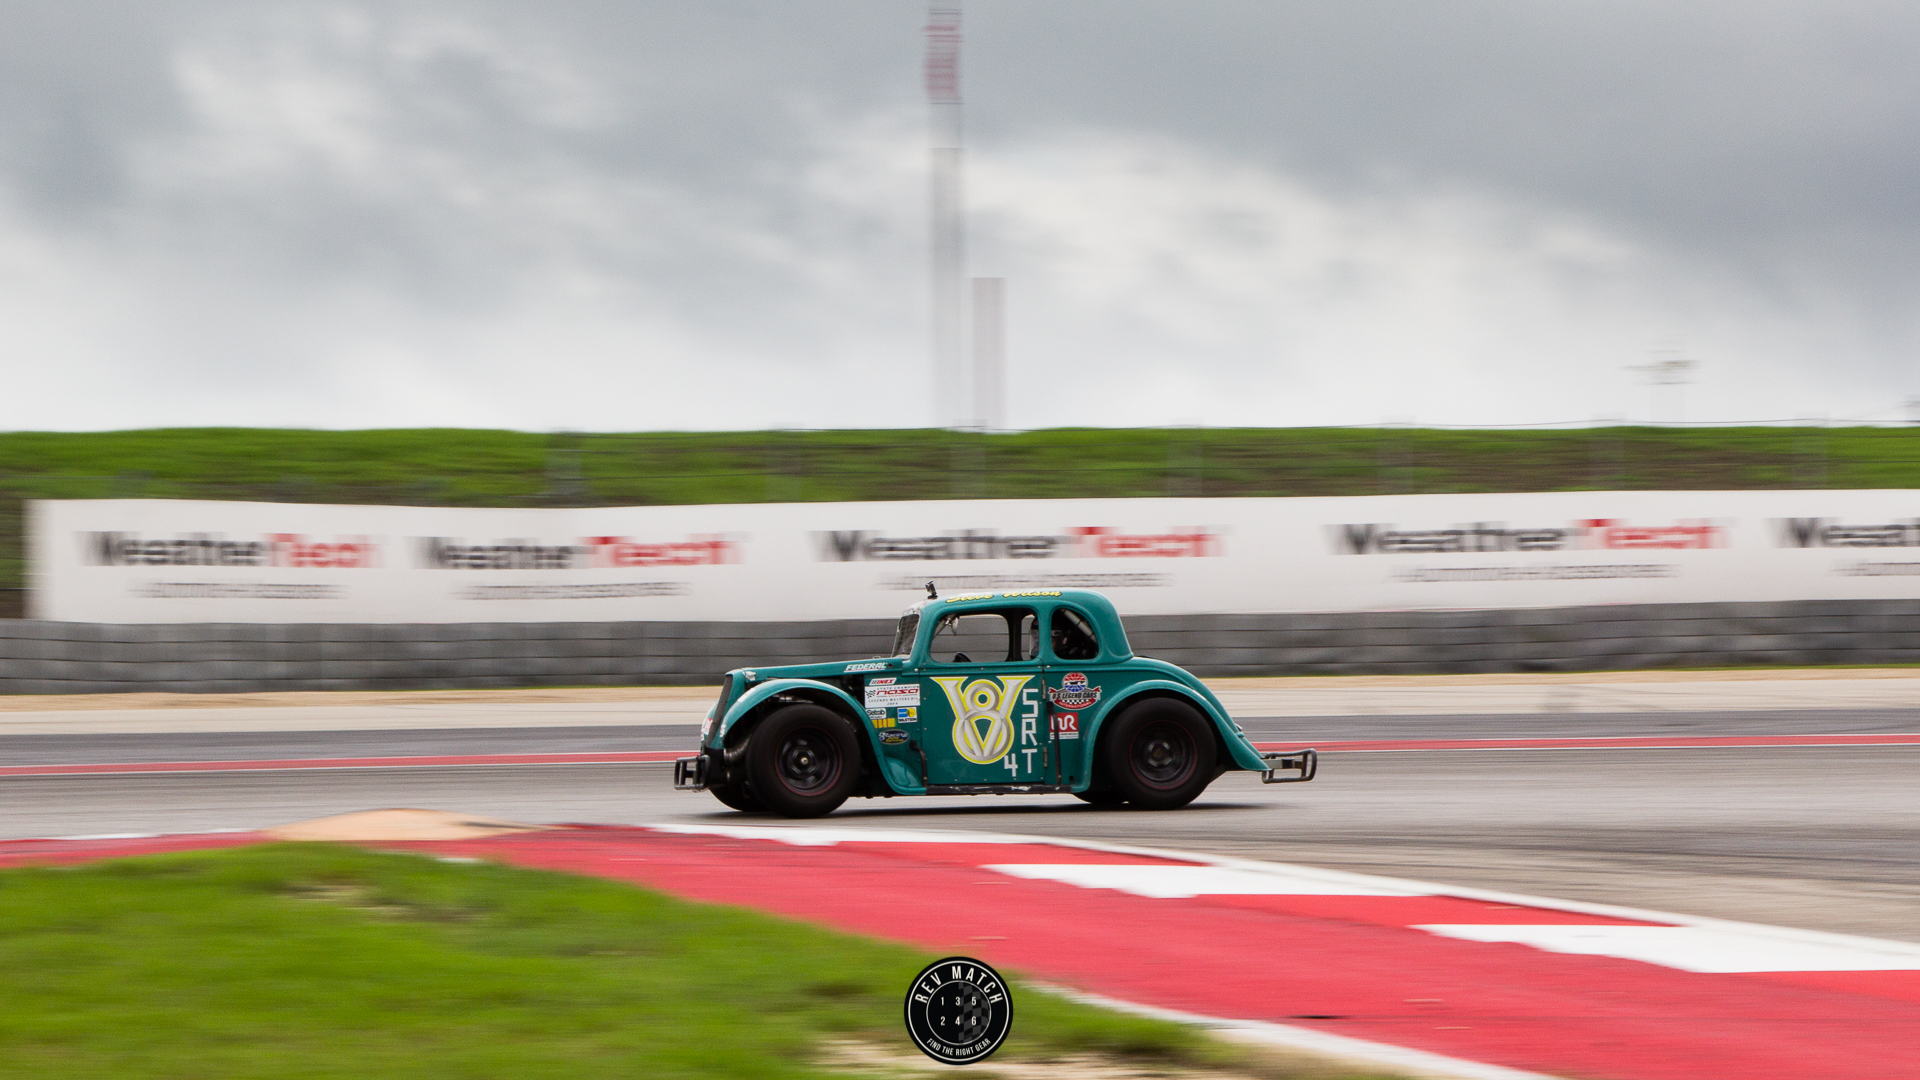 RMM x NASA at COTA 2018-141.jpg